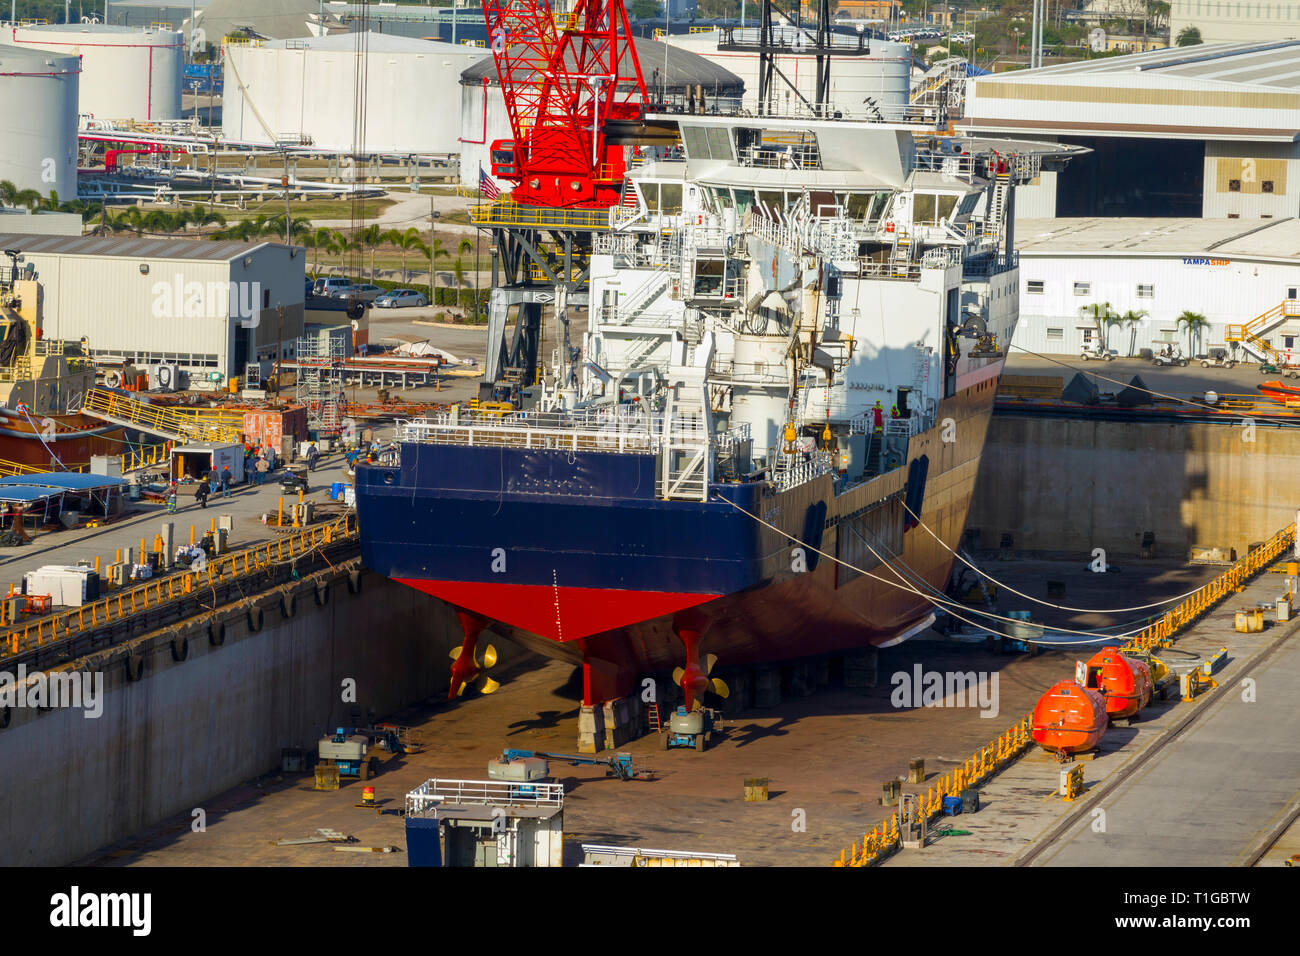 Ship in dry dock for repairs and maintenance  Tampa Florida A dry dock (sometimes dry-dock or drydock) is a narrow basin or vessel that can be flooded - Stock Image